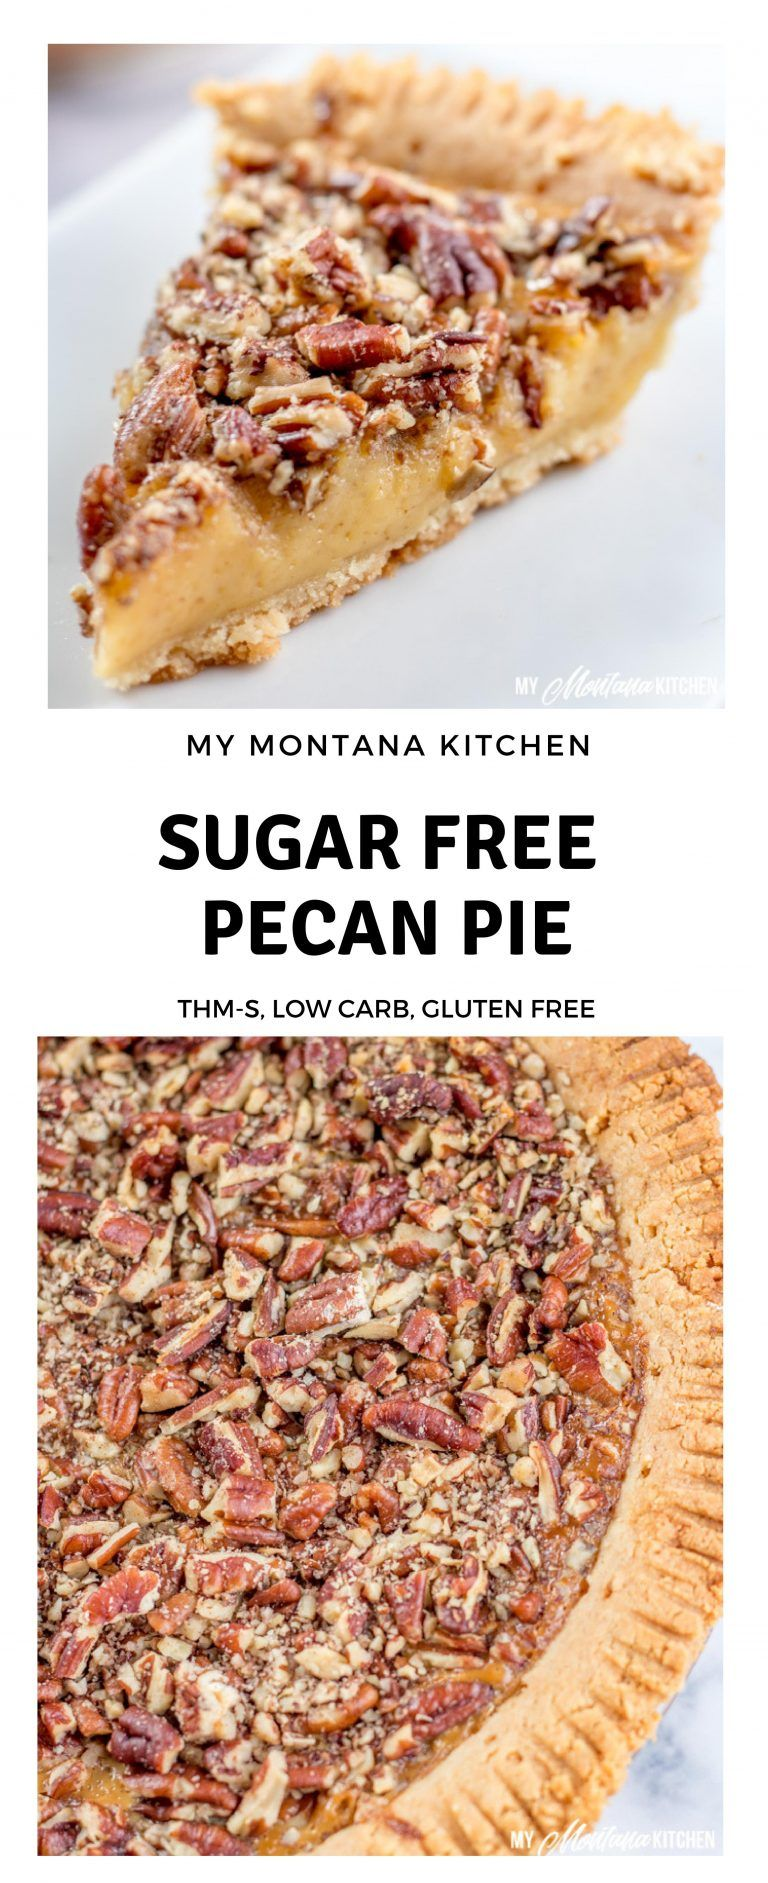 This Sugar Free Pecan Pie Uses A Low Carb Condensed Milk To Replace The Traditional Corn Syrup Sugar Free Pecan Pie Low Carb Pecan Pie Low Carb Recipes Dessert